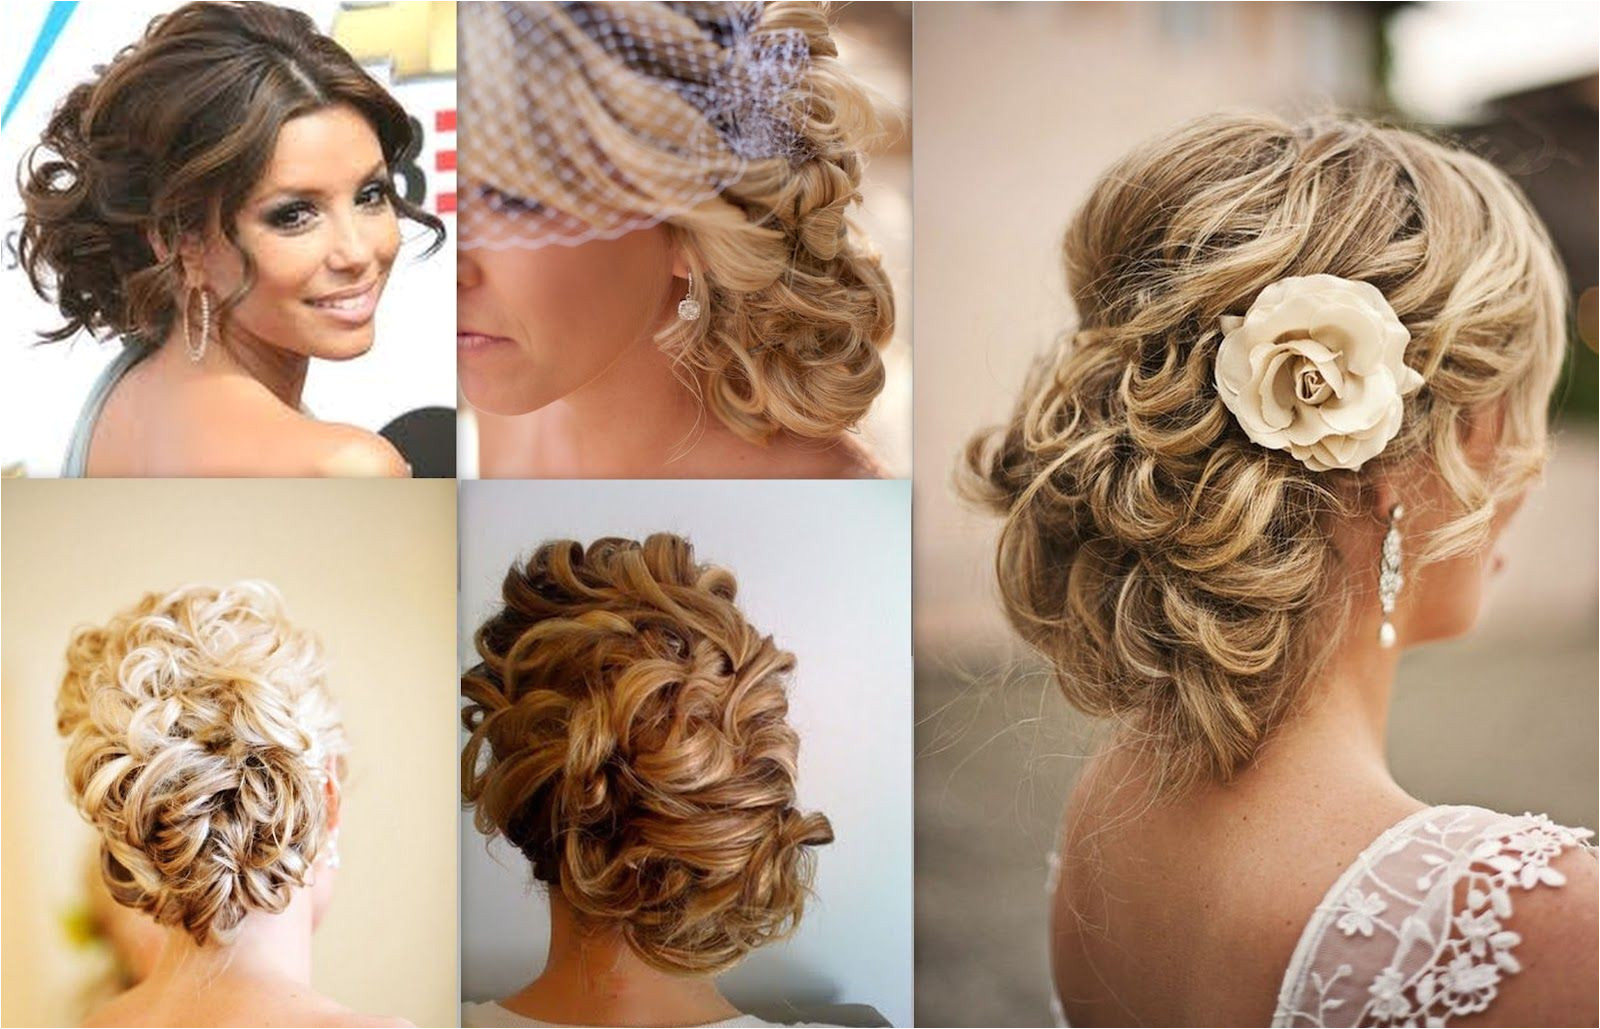 Side Updo Hairstyles For Weddings Updo Wedding Hairstyles Long Hair 10 Bridal…